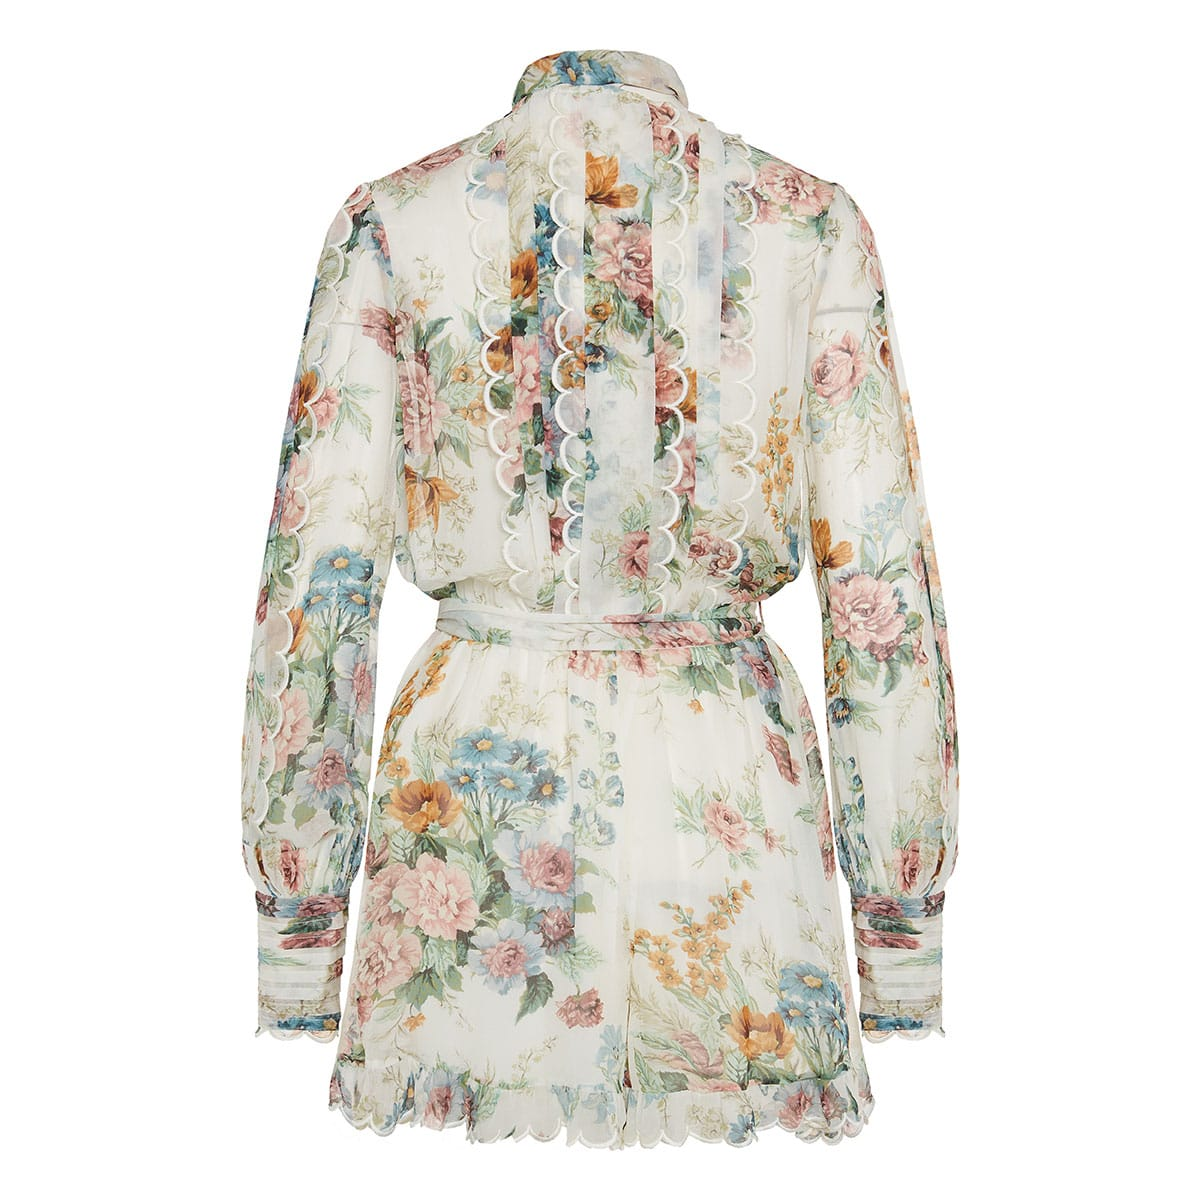 Wavelength bow-tie floral playsuit